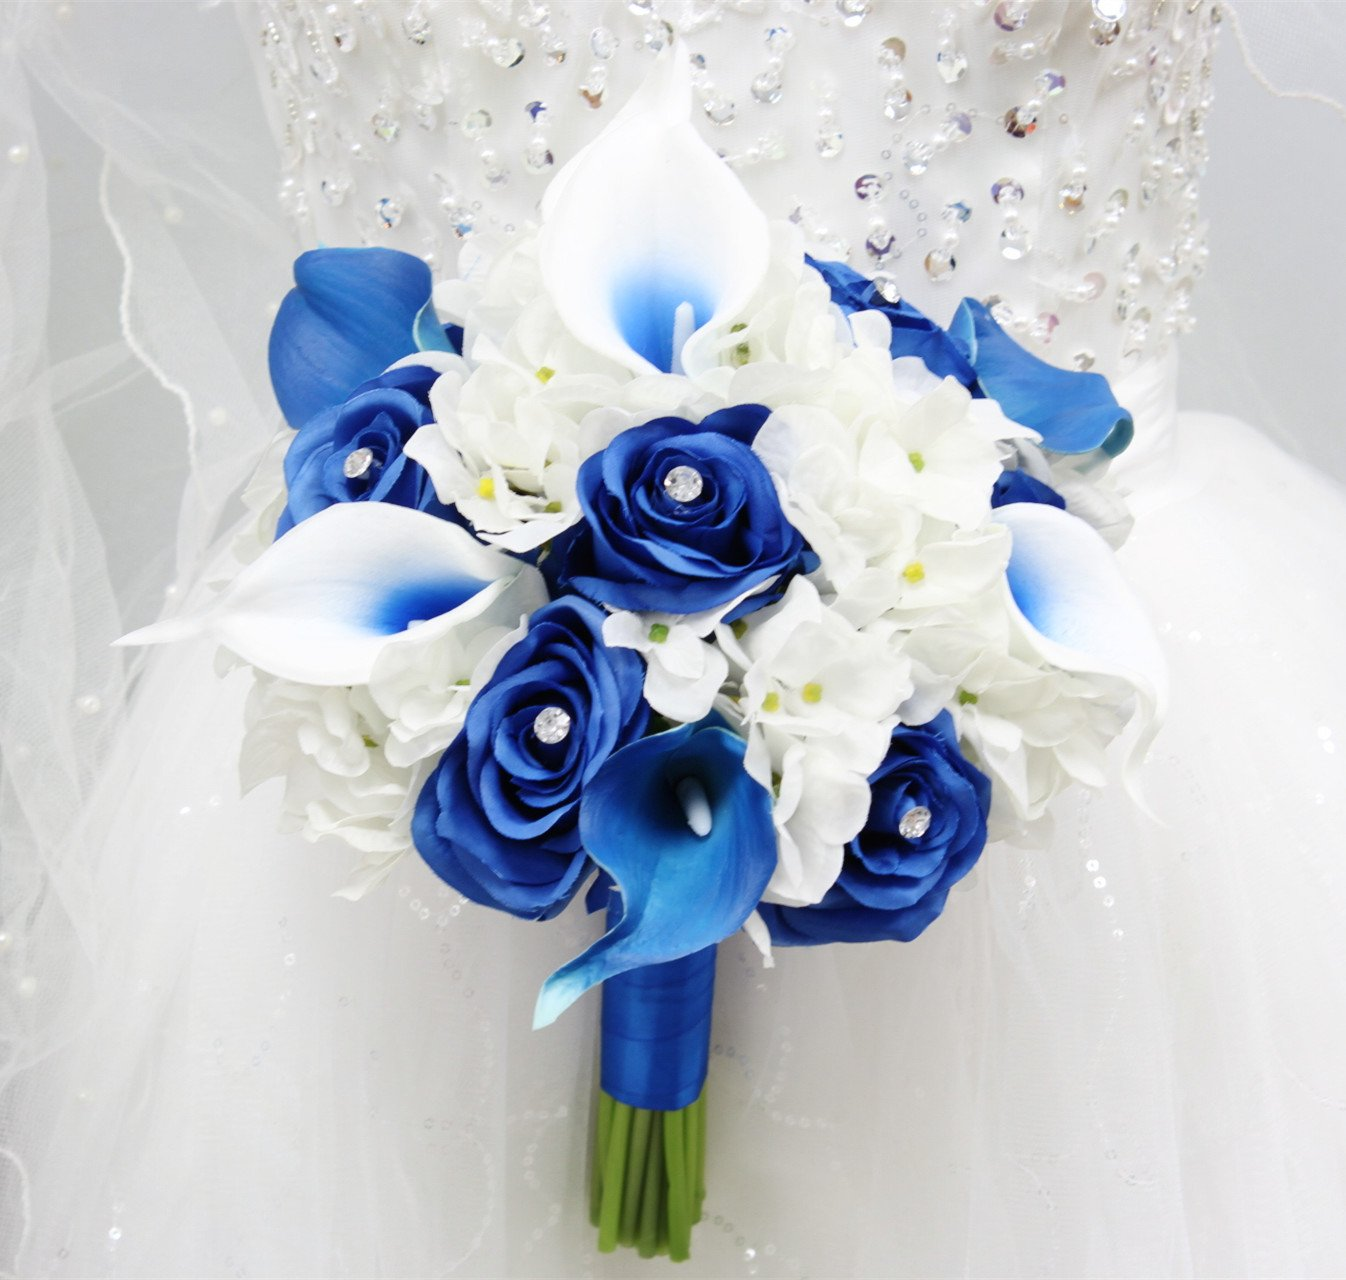 Angel Isabella Beautiful Hand-Tied Bouquet-Hydrangea Rose Calla Lily-Colors in Navy Wine Burgundy Fuchsia Raspberry Mint Spa Coral Turquoise Horizon Blue (White/Royal Blue, 9'') by Angel Isabella